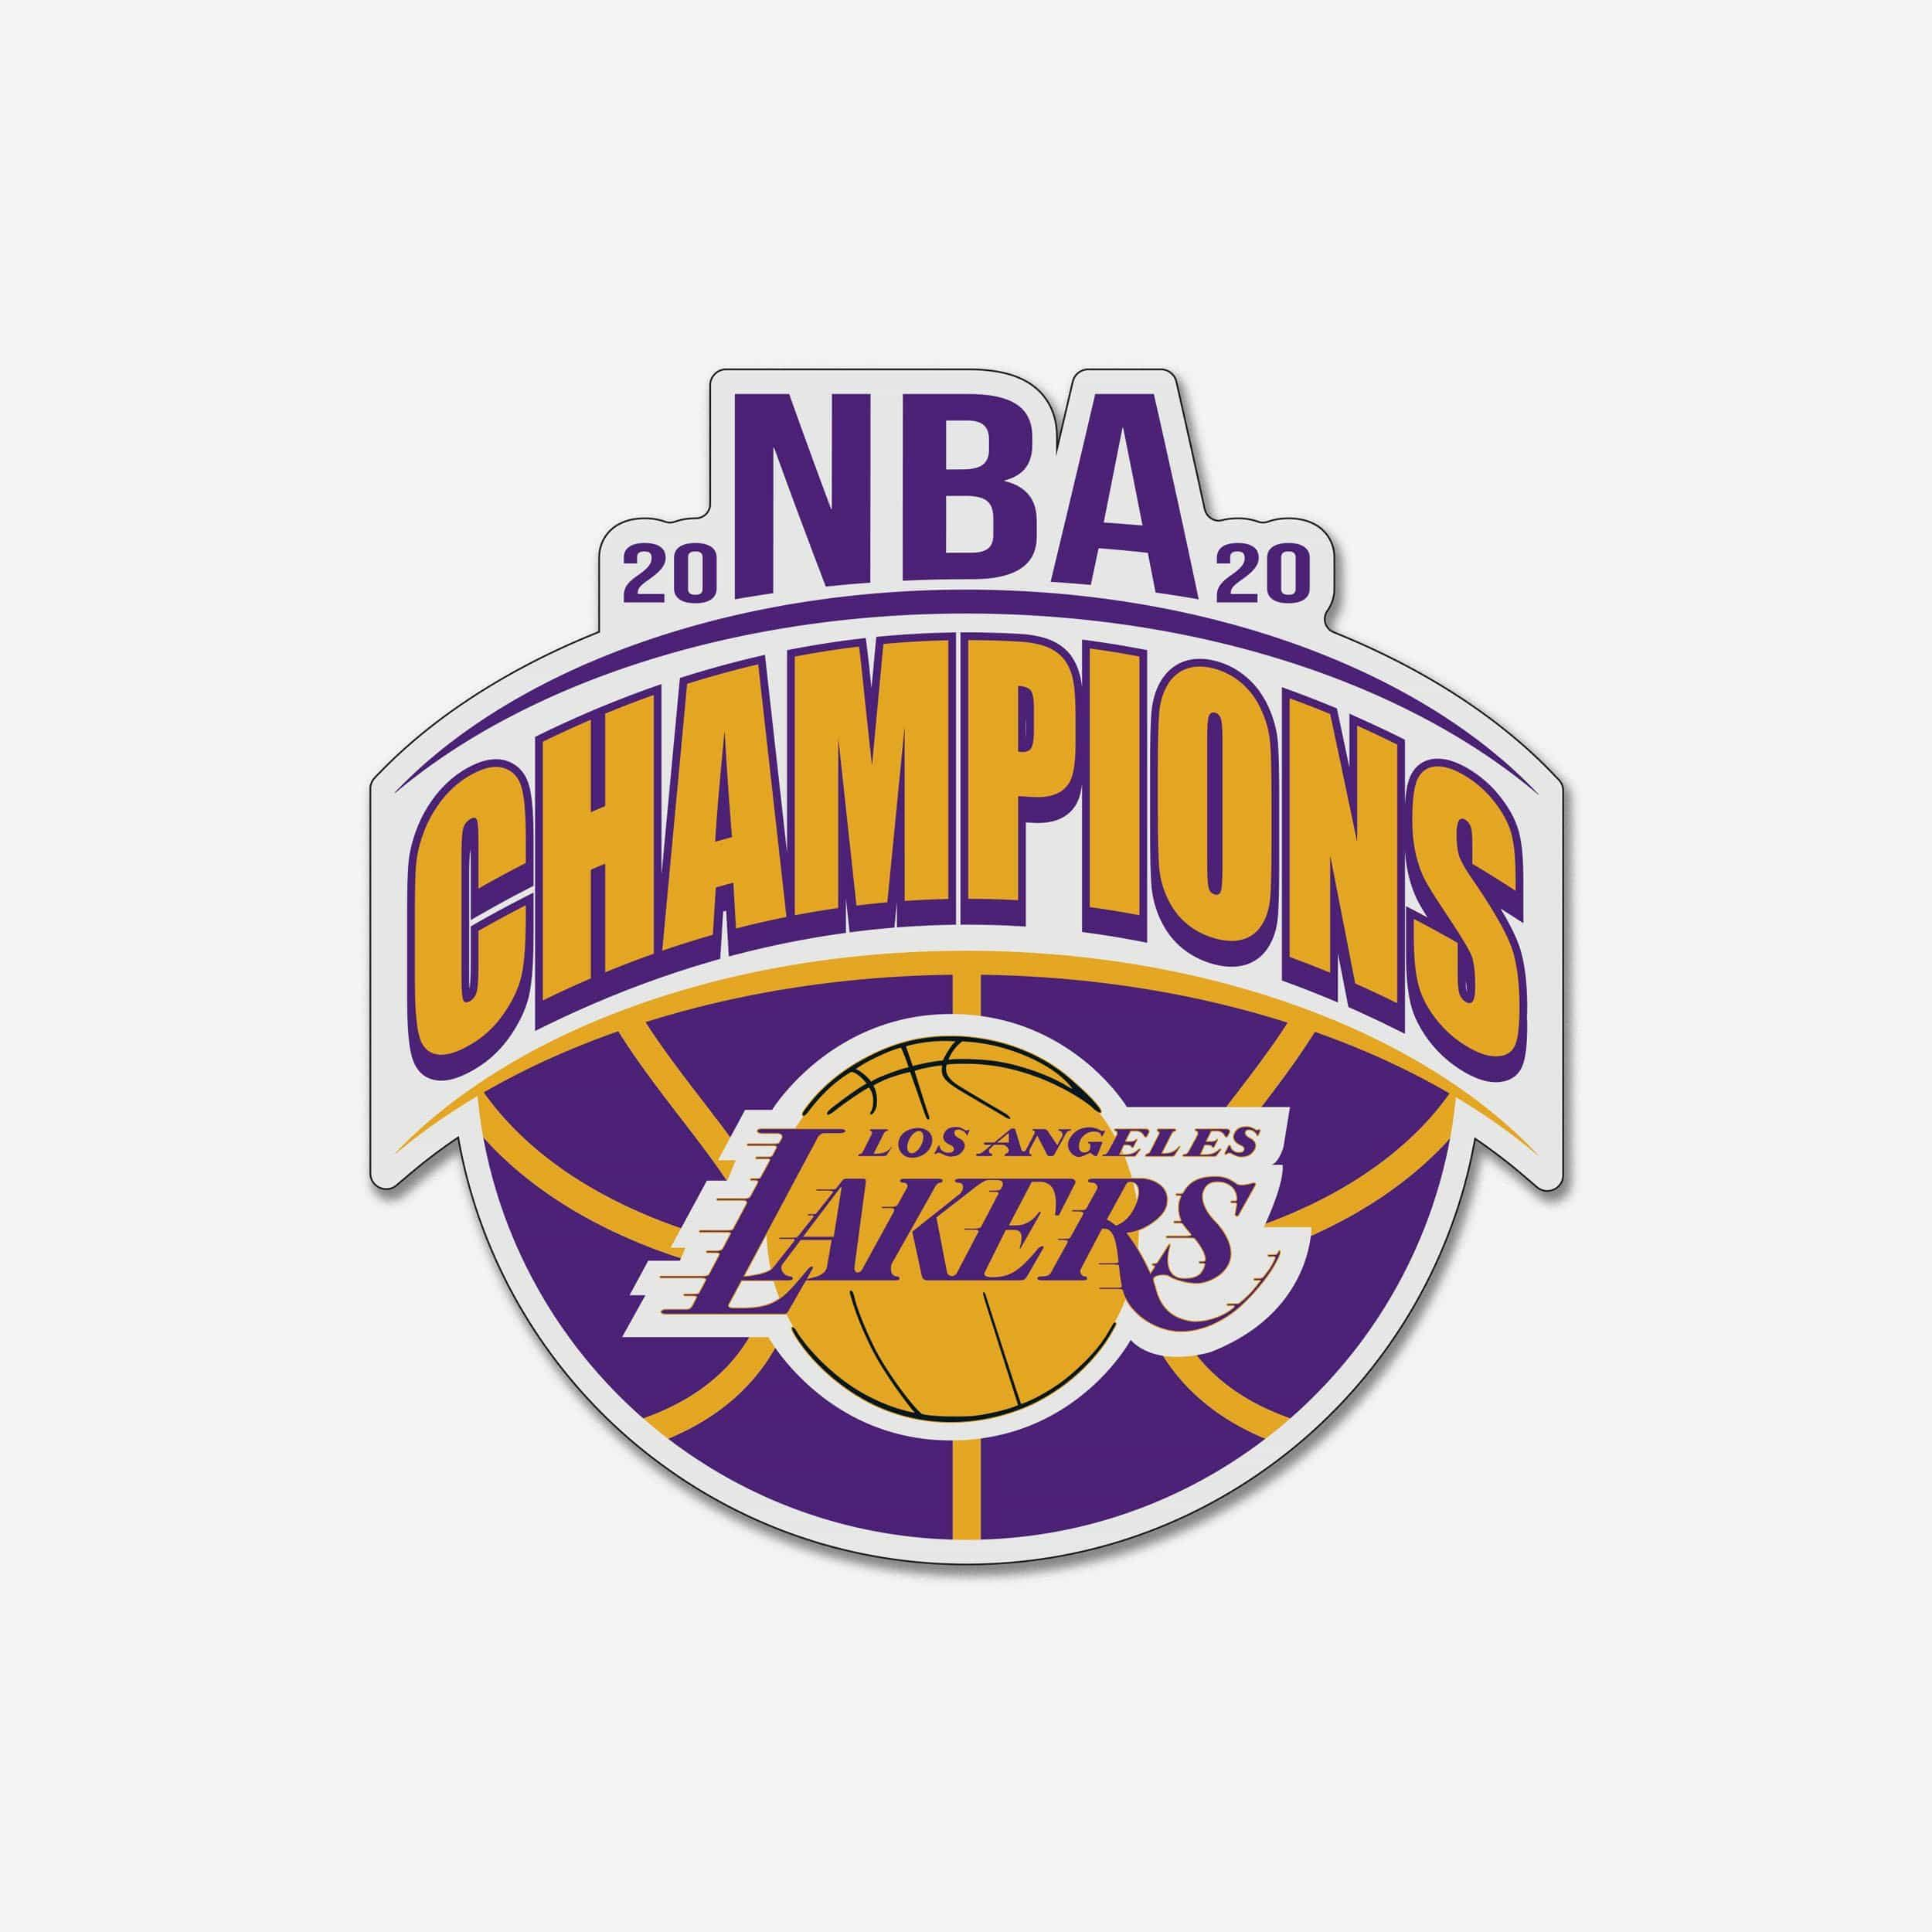 Los Angeles Lakers 2020 Nba Champions Magnet In 2021 Los Angeles Lakers Nba Champions Lakers Championships [ 2500 x 2500 Pixel ]